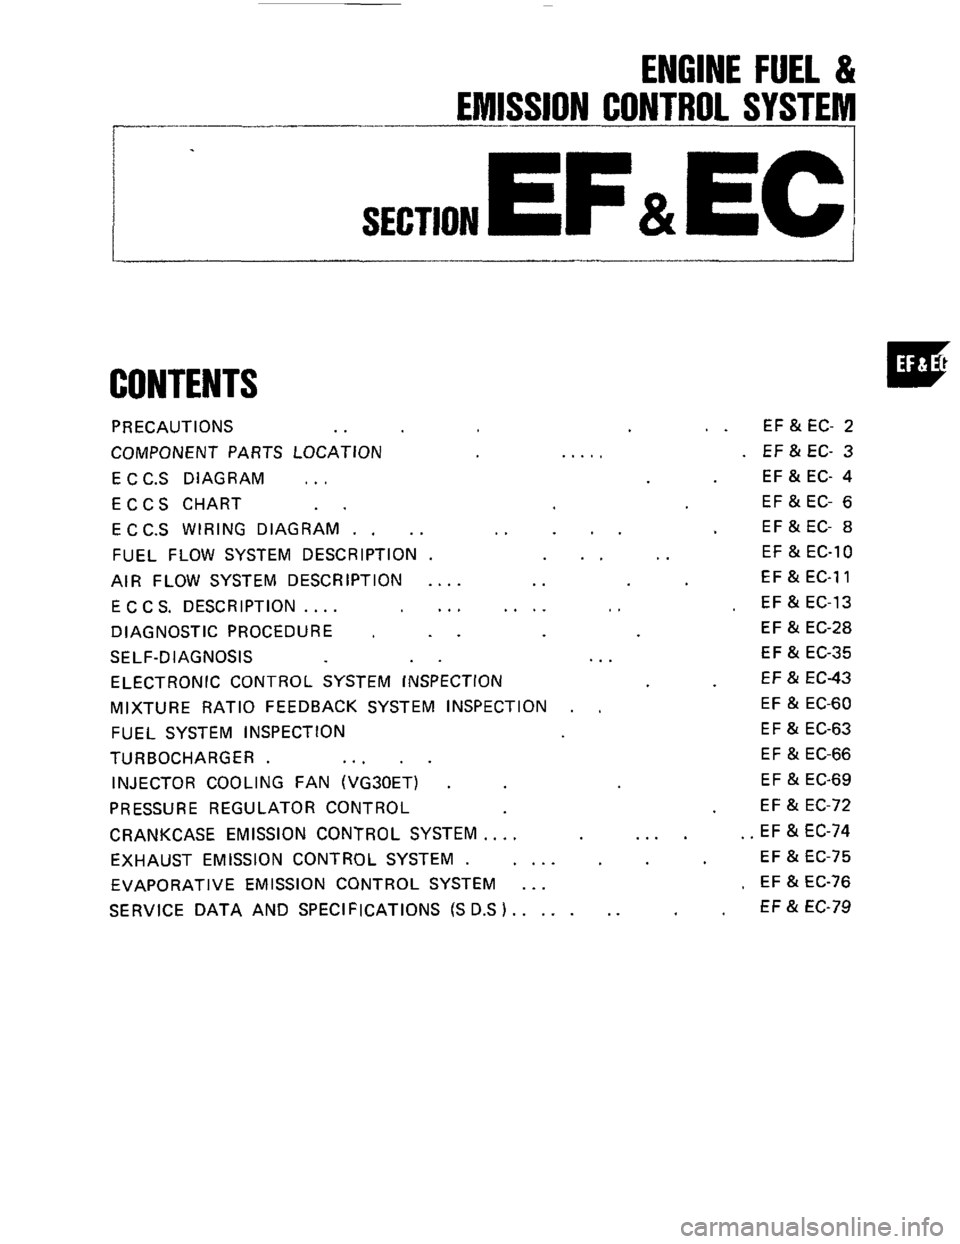 Nissan 300zx 1984 Z31 Engine Fuel And Emission Control System Subaru Wiring Diagram Workshop Manual